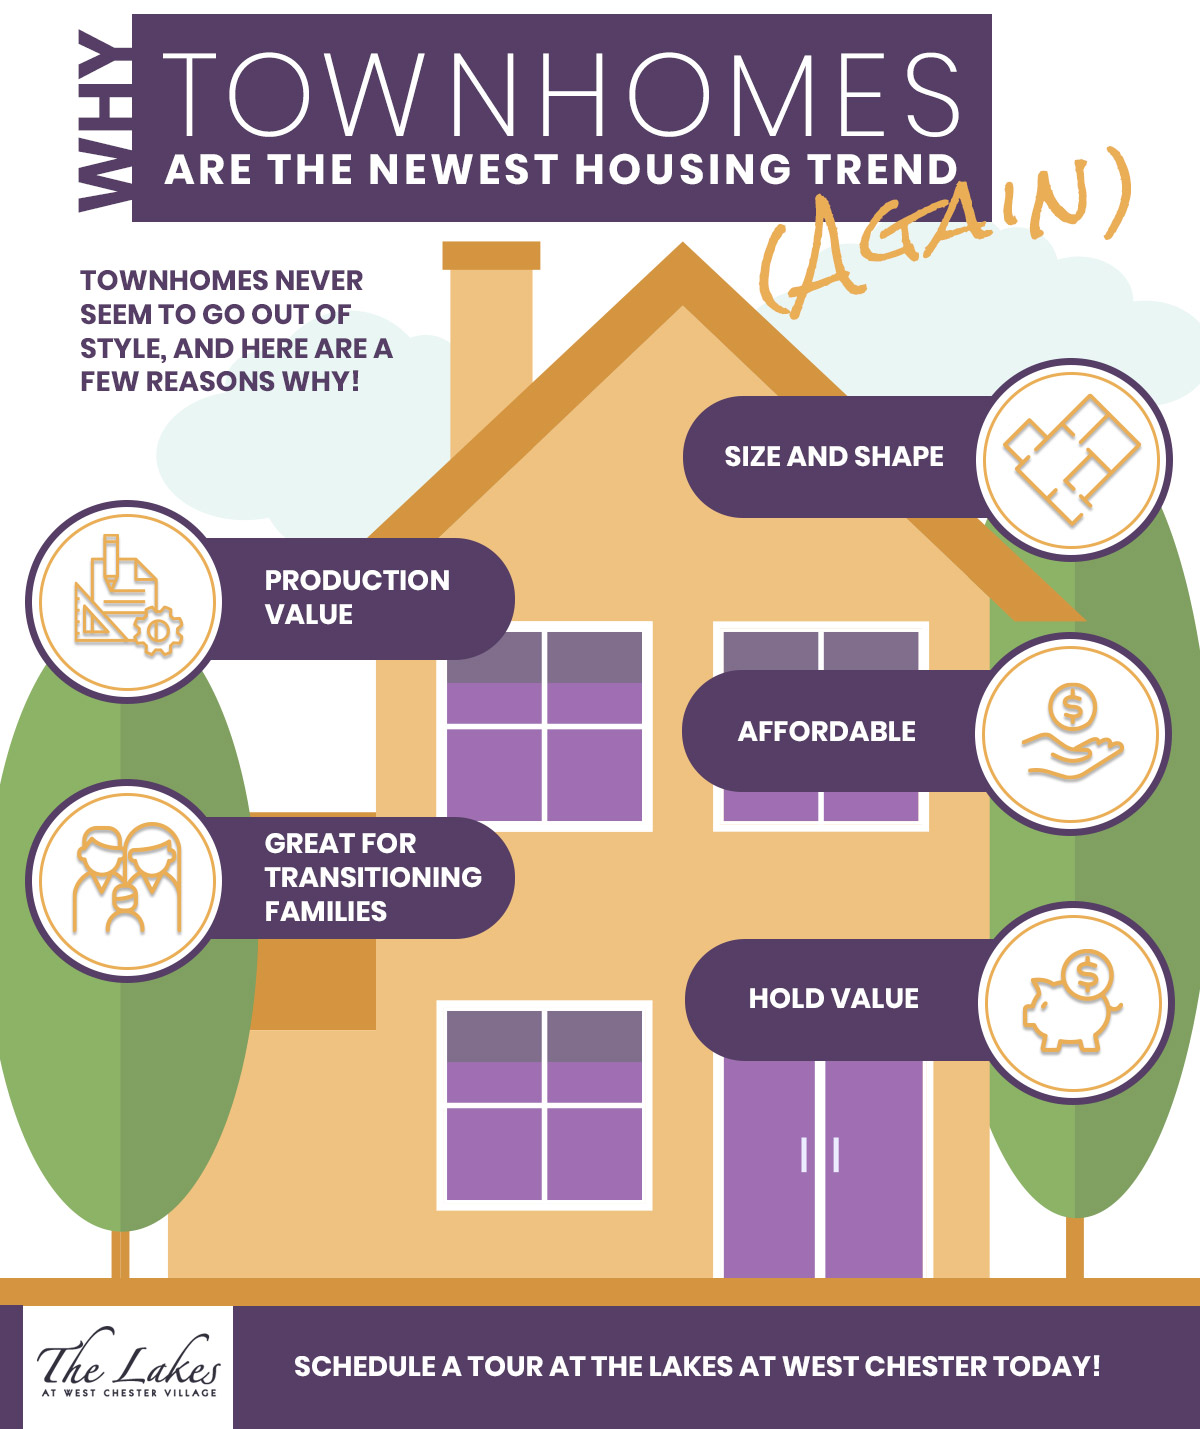 Why Townhomes Are The Newest Housing Trend (Again) Infographic